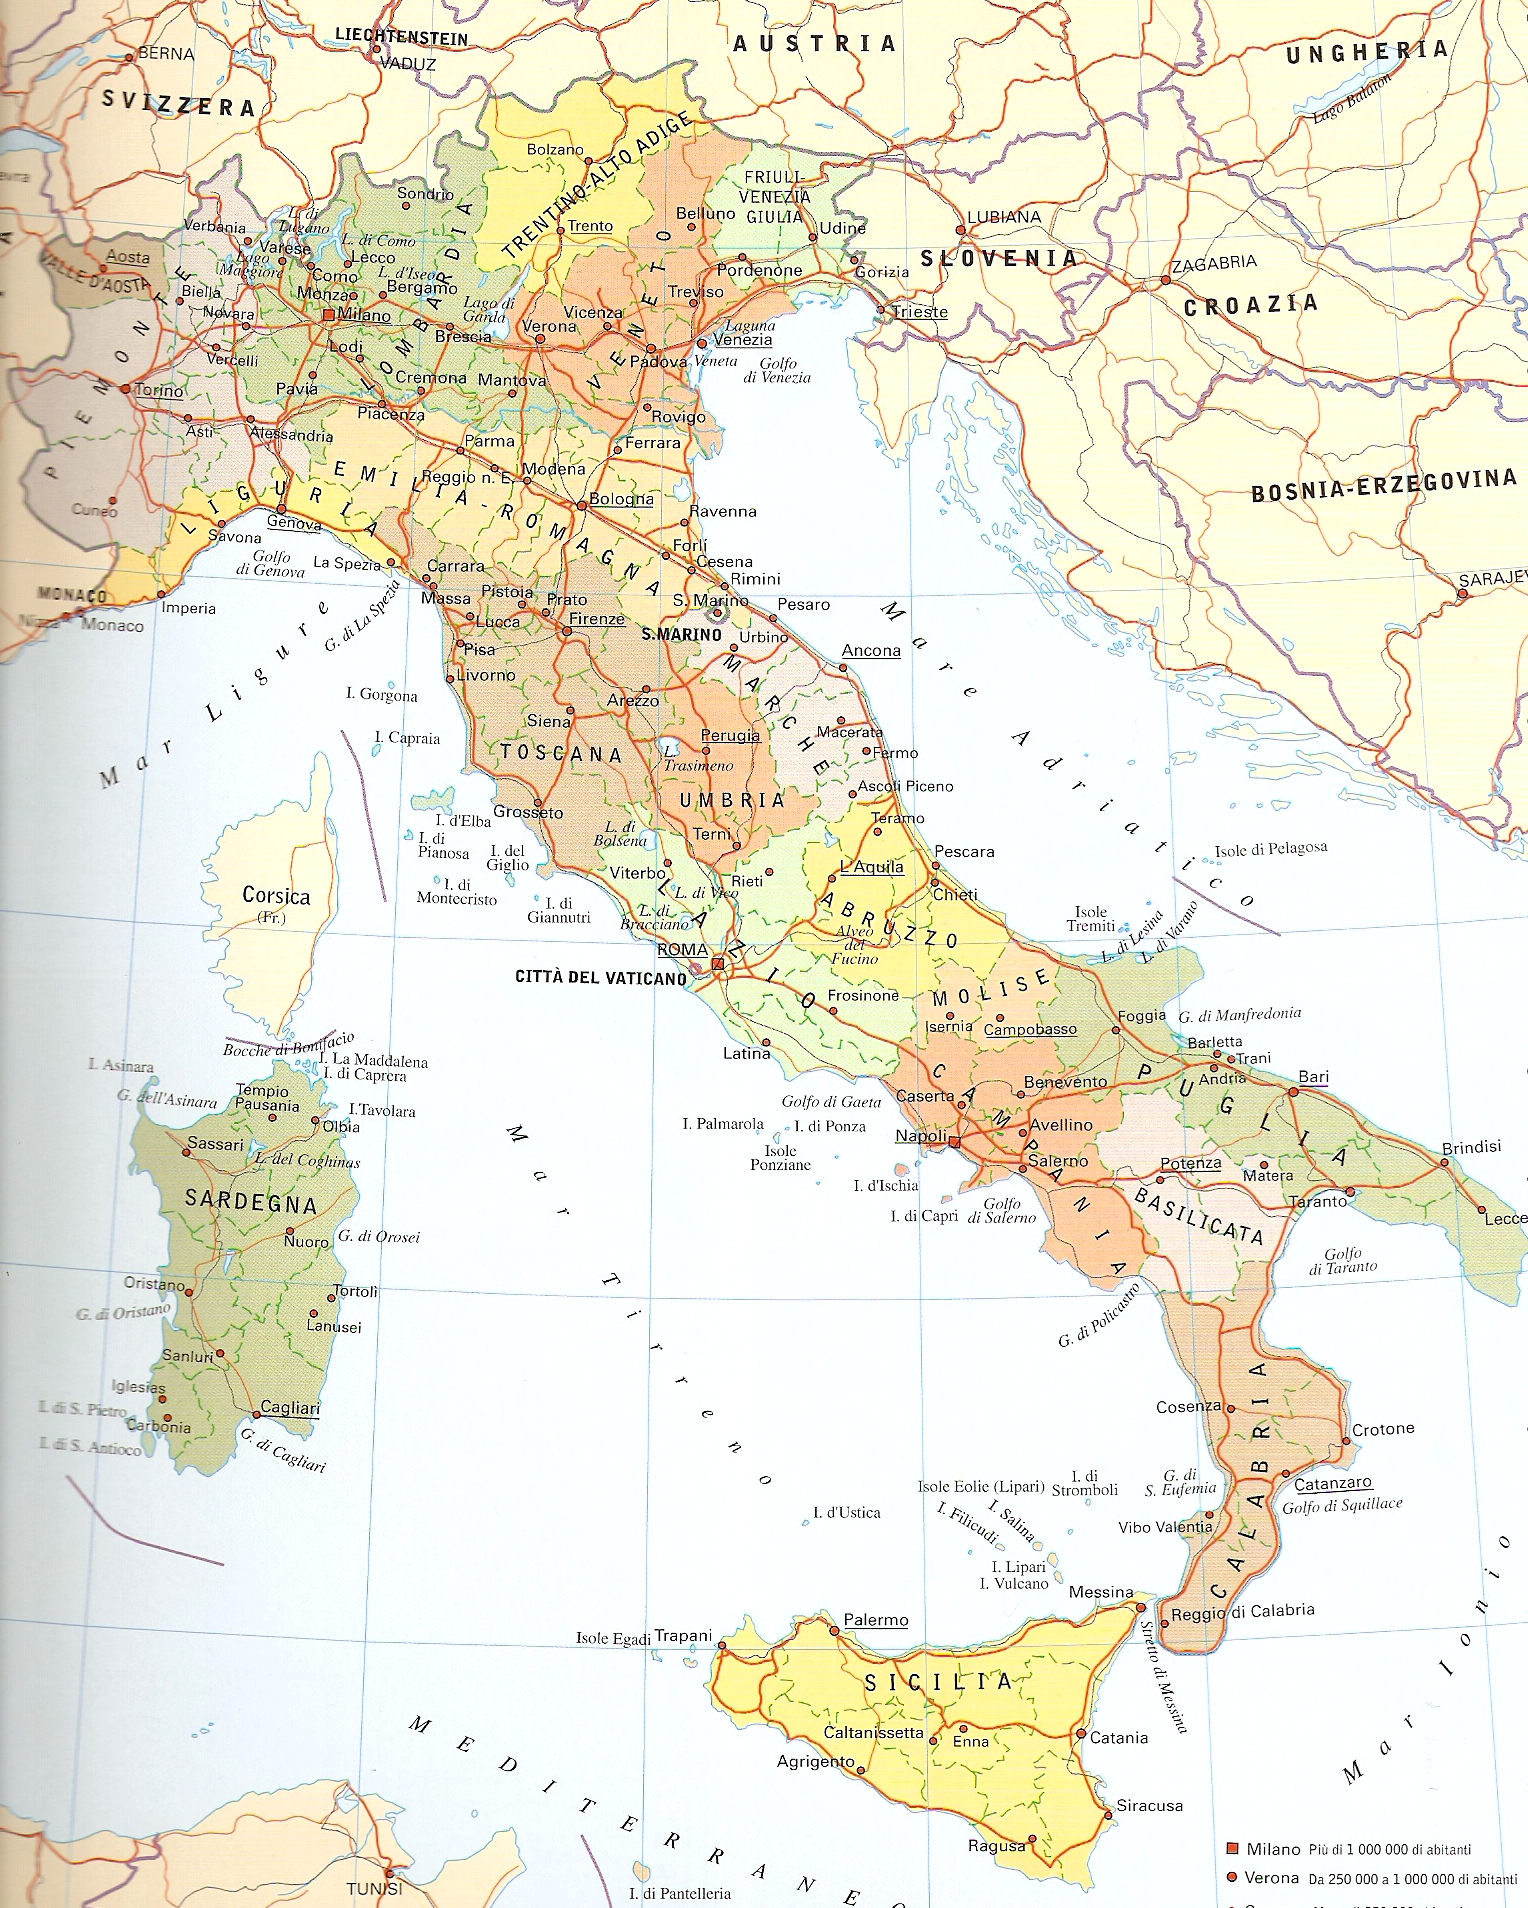 Cartina Italia Mappa.Cartina Dell Italia Politica Da Stampare Cartina Dell Italia Politica Cartina Regioni Italiane Carta Politica Italia